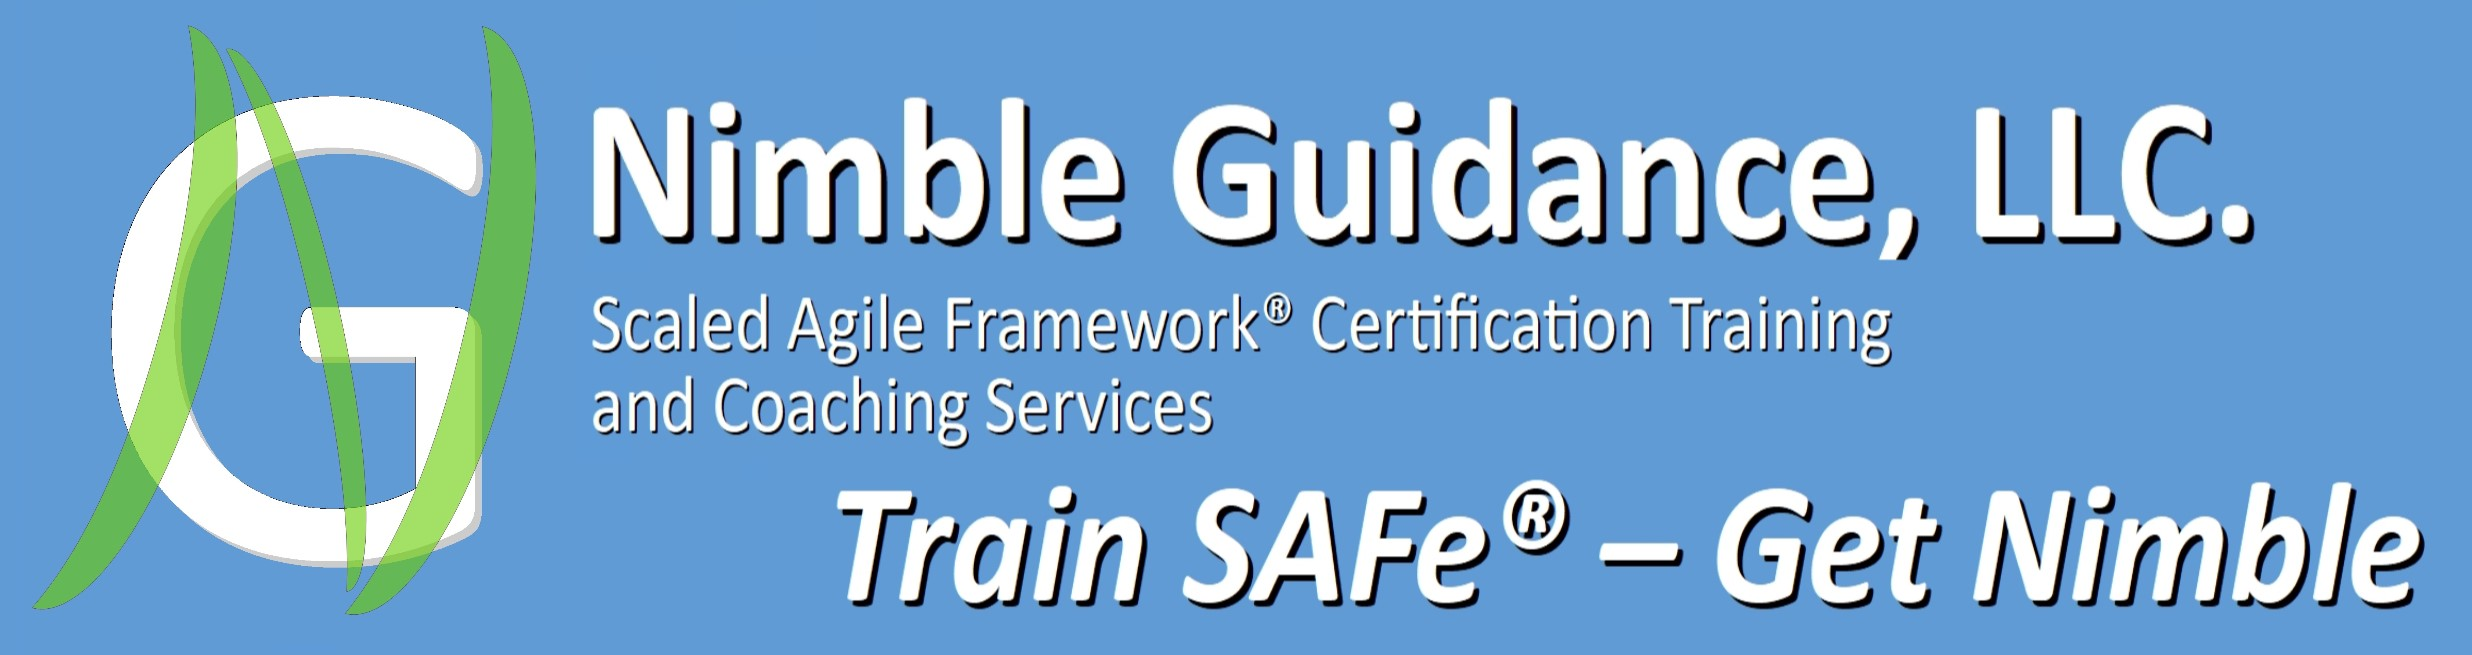 Certifications Nimble Guidance Scaled Agile Framework Training